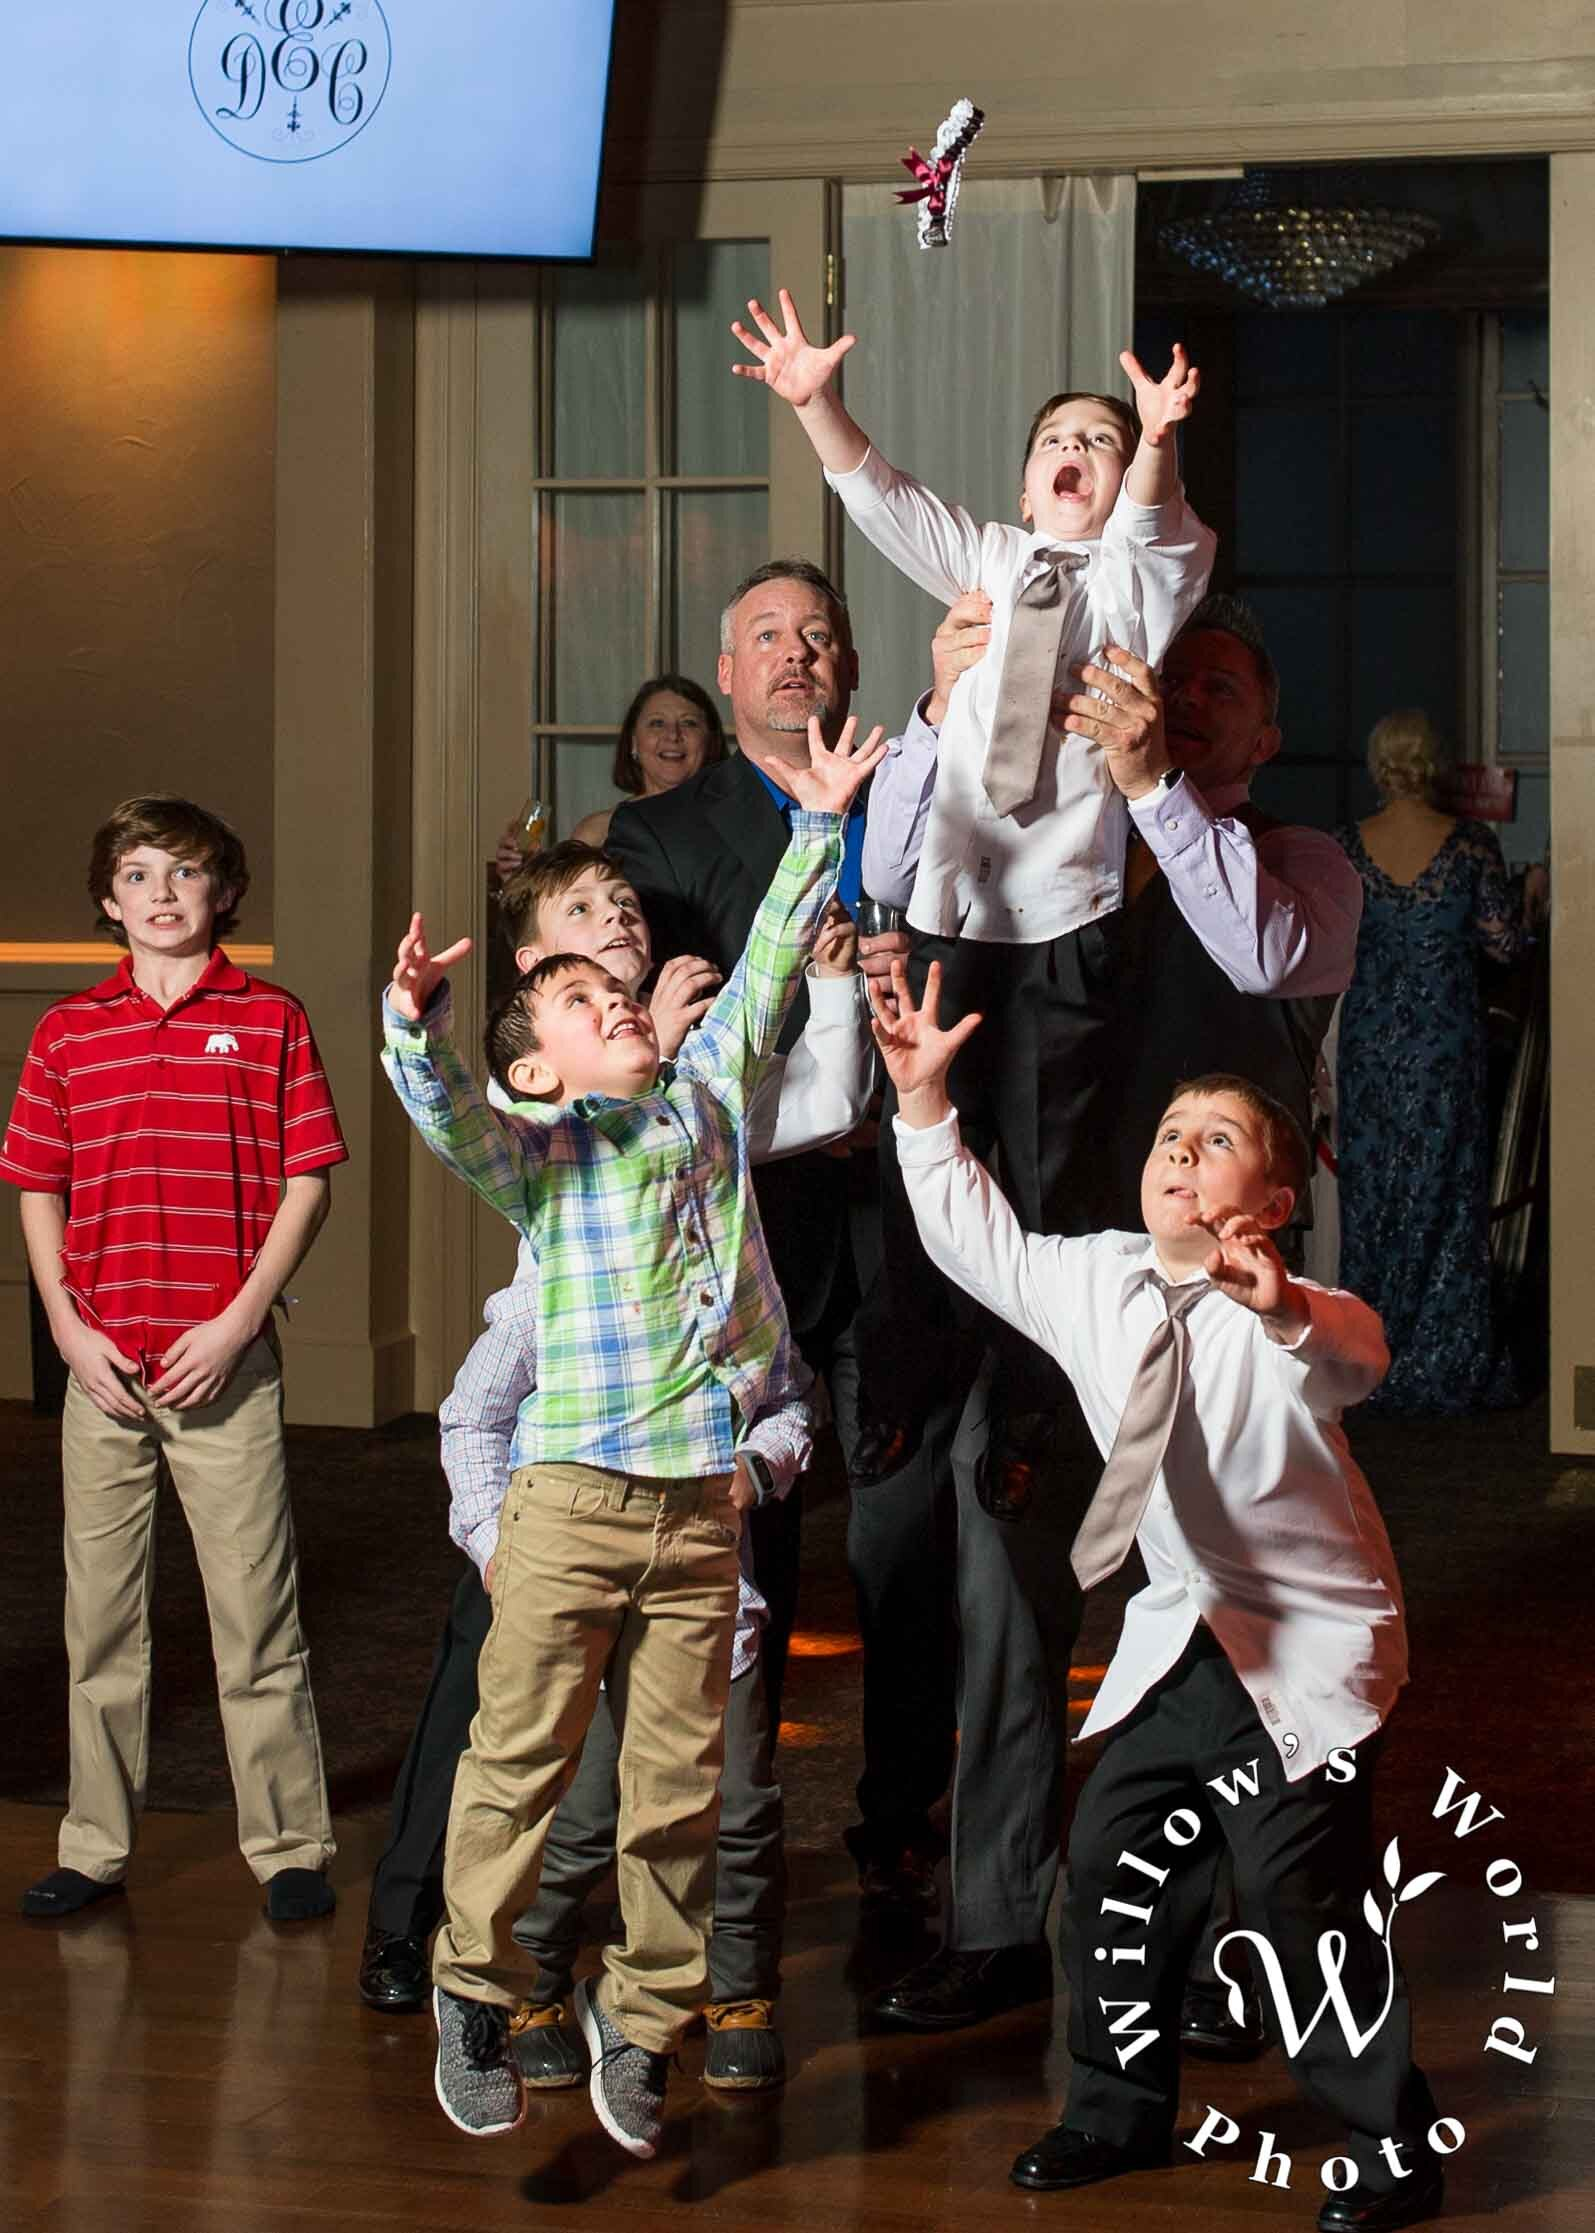 54-Generations-Hall-New-Orleans-Wedding-Reception-Photo-Willows-World-Photo.jpg